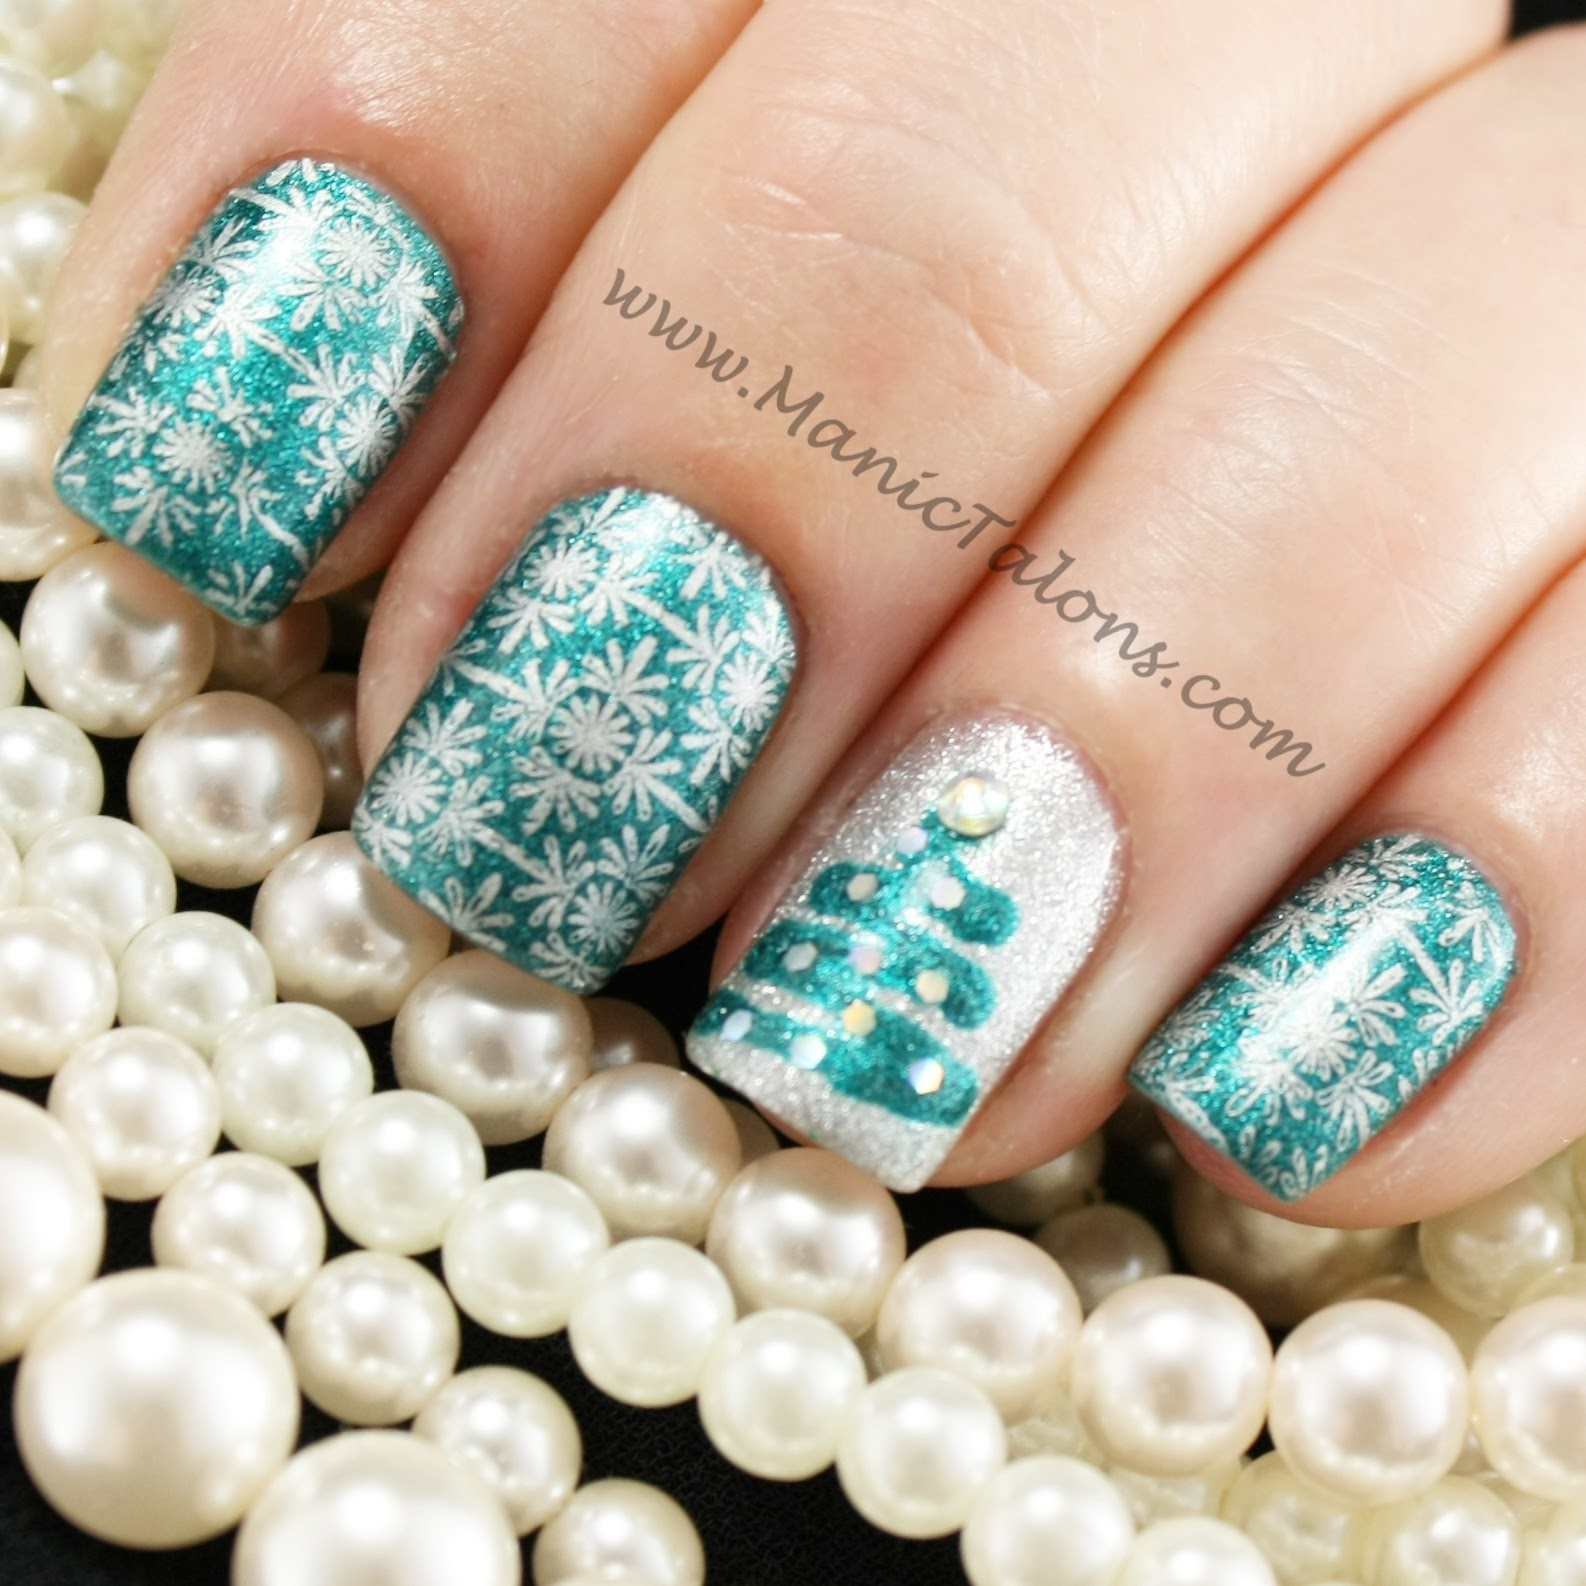 Manic Talons Nail Design: Merry Christmas Everyone!